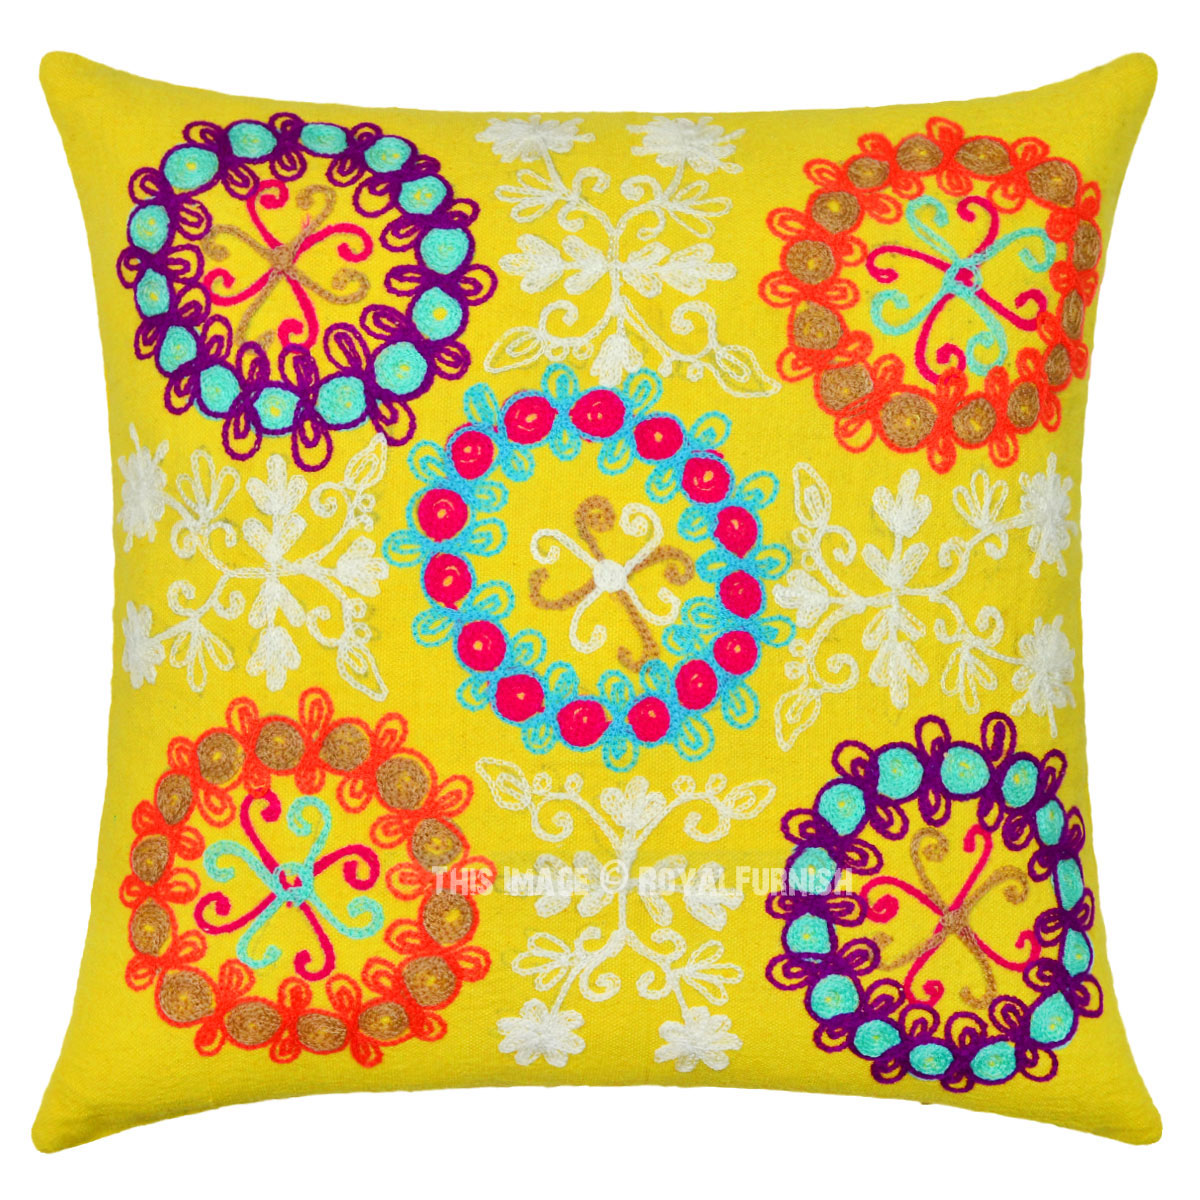 Yellow Decorative Embroidery Indian Suzani Designer Throw Pillow Cover - RoyalFurnish.com